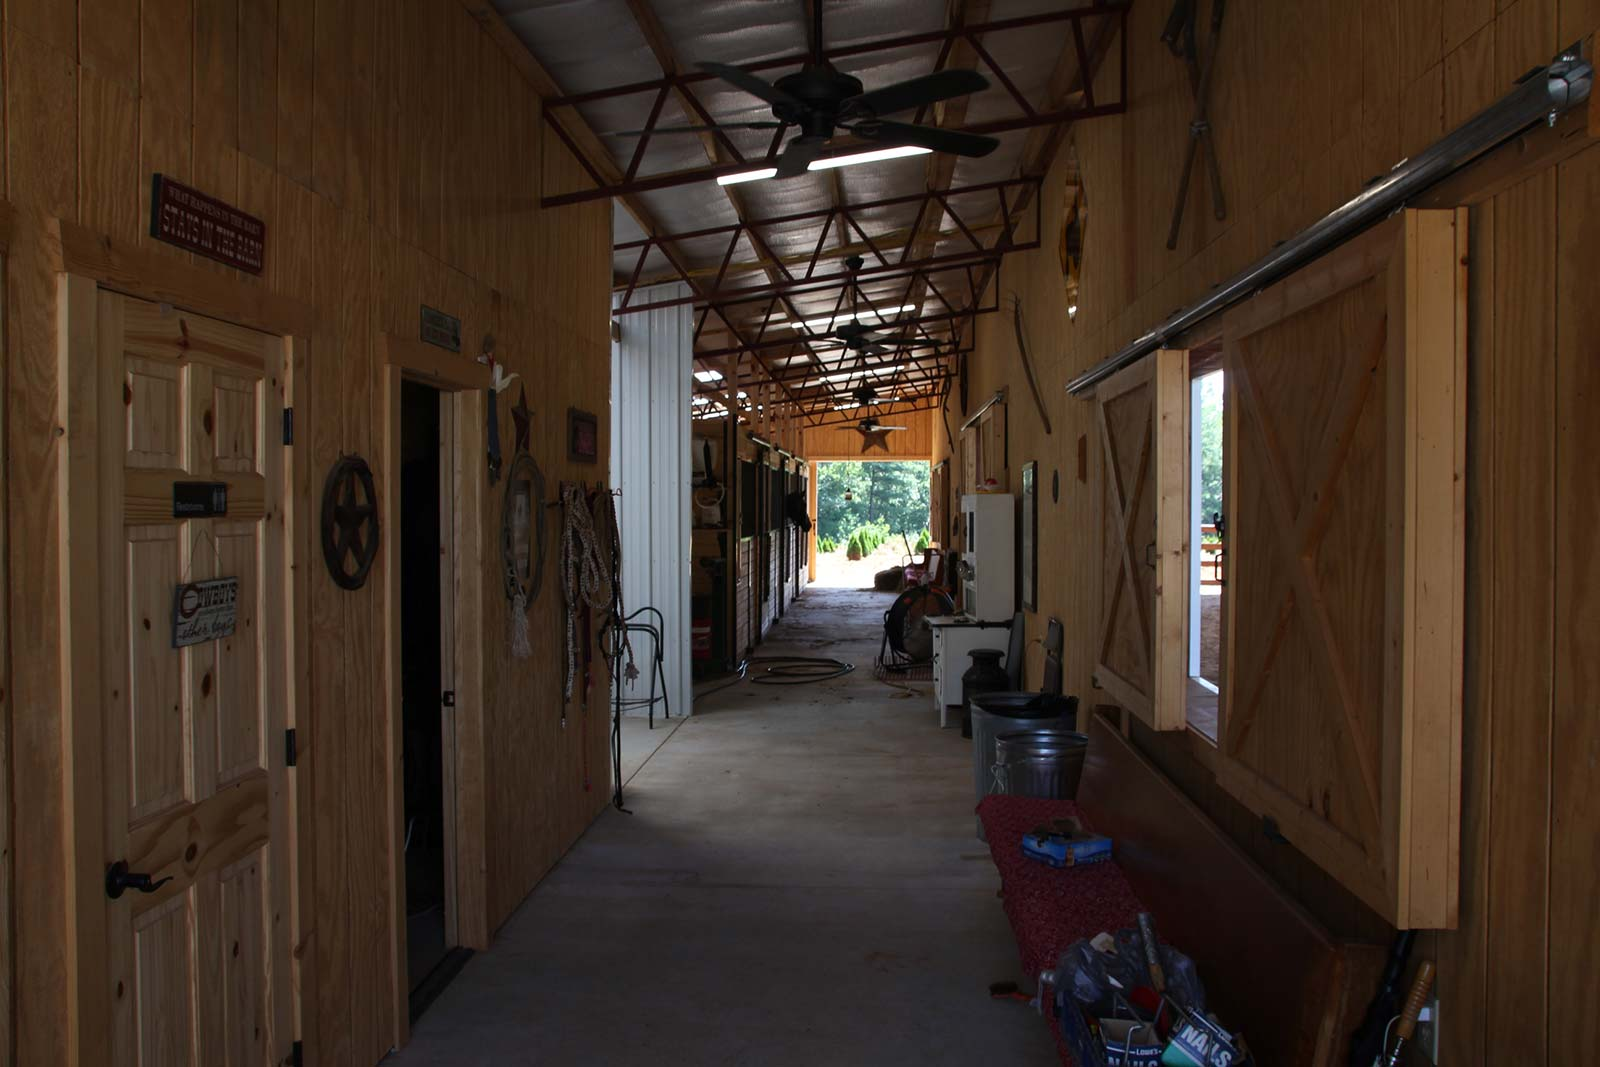 View through horse stable area